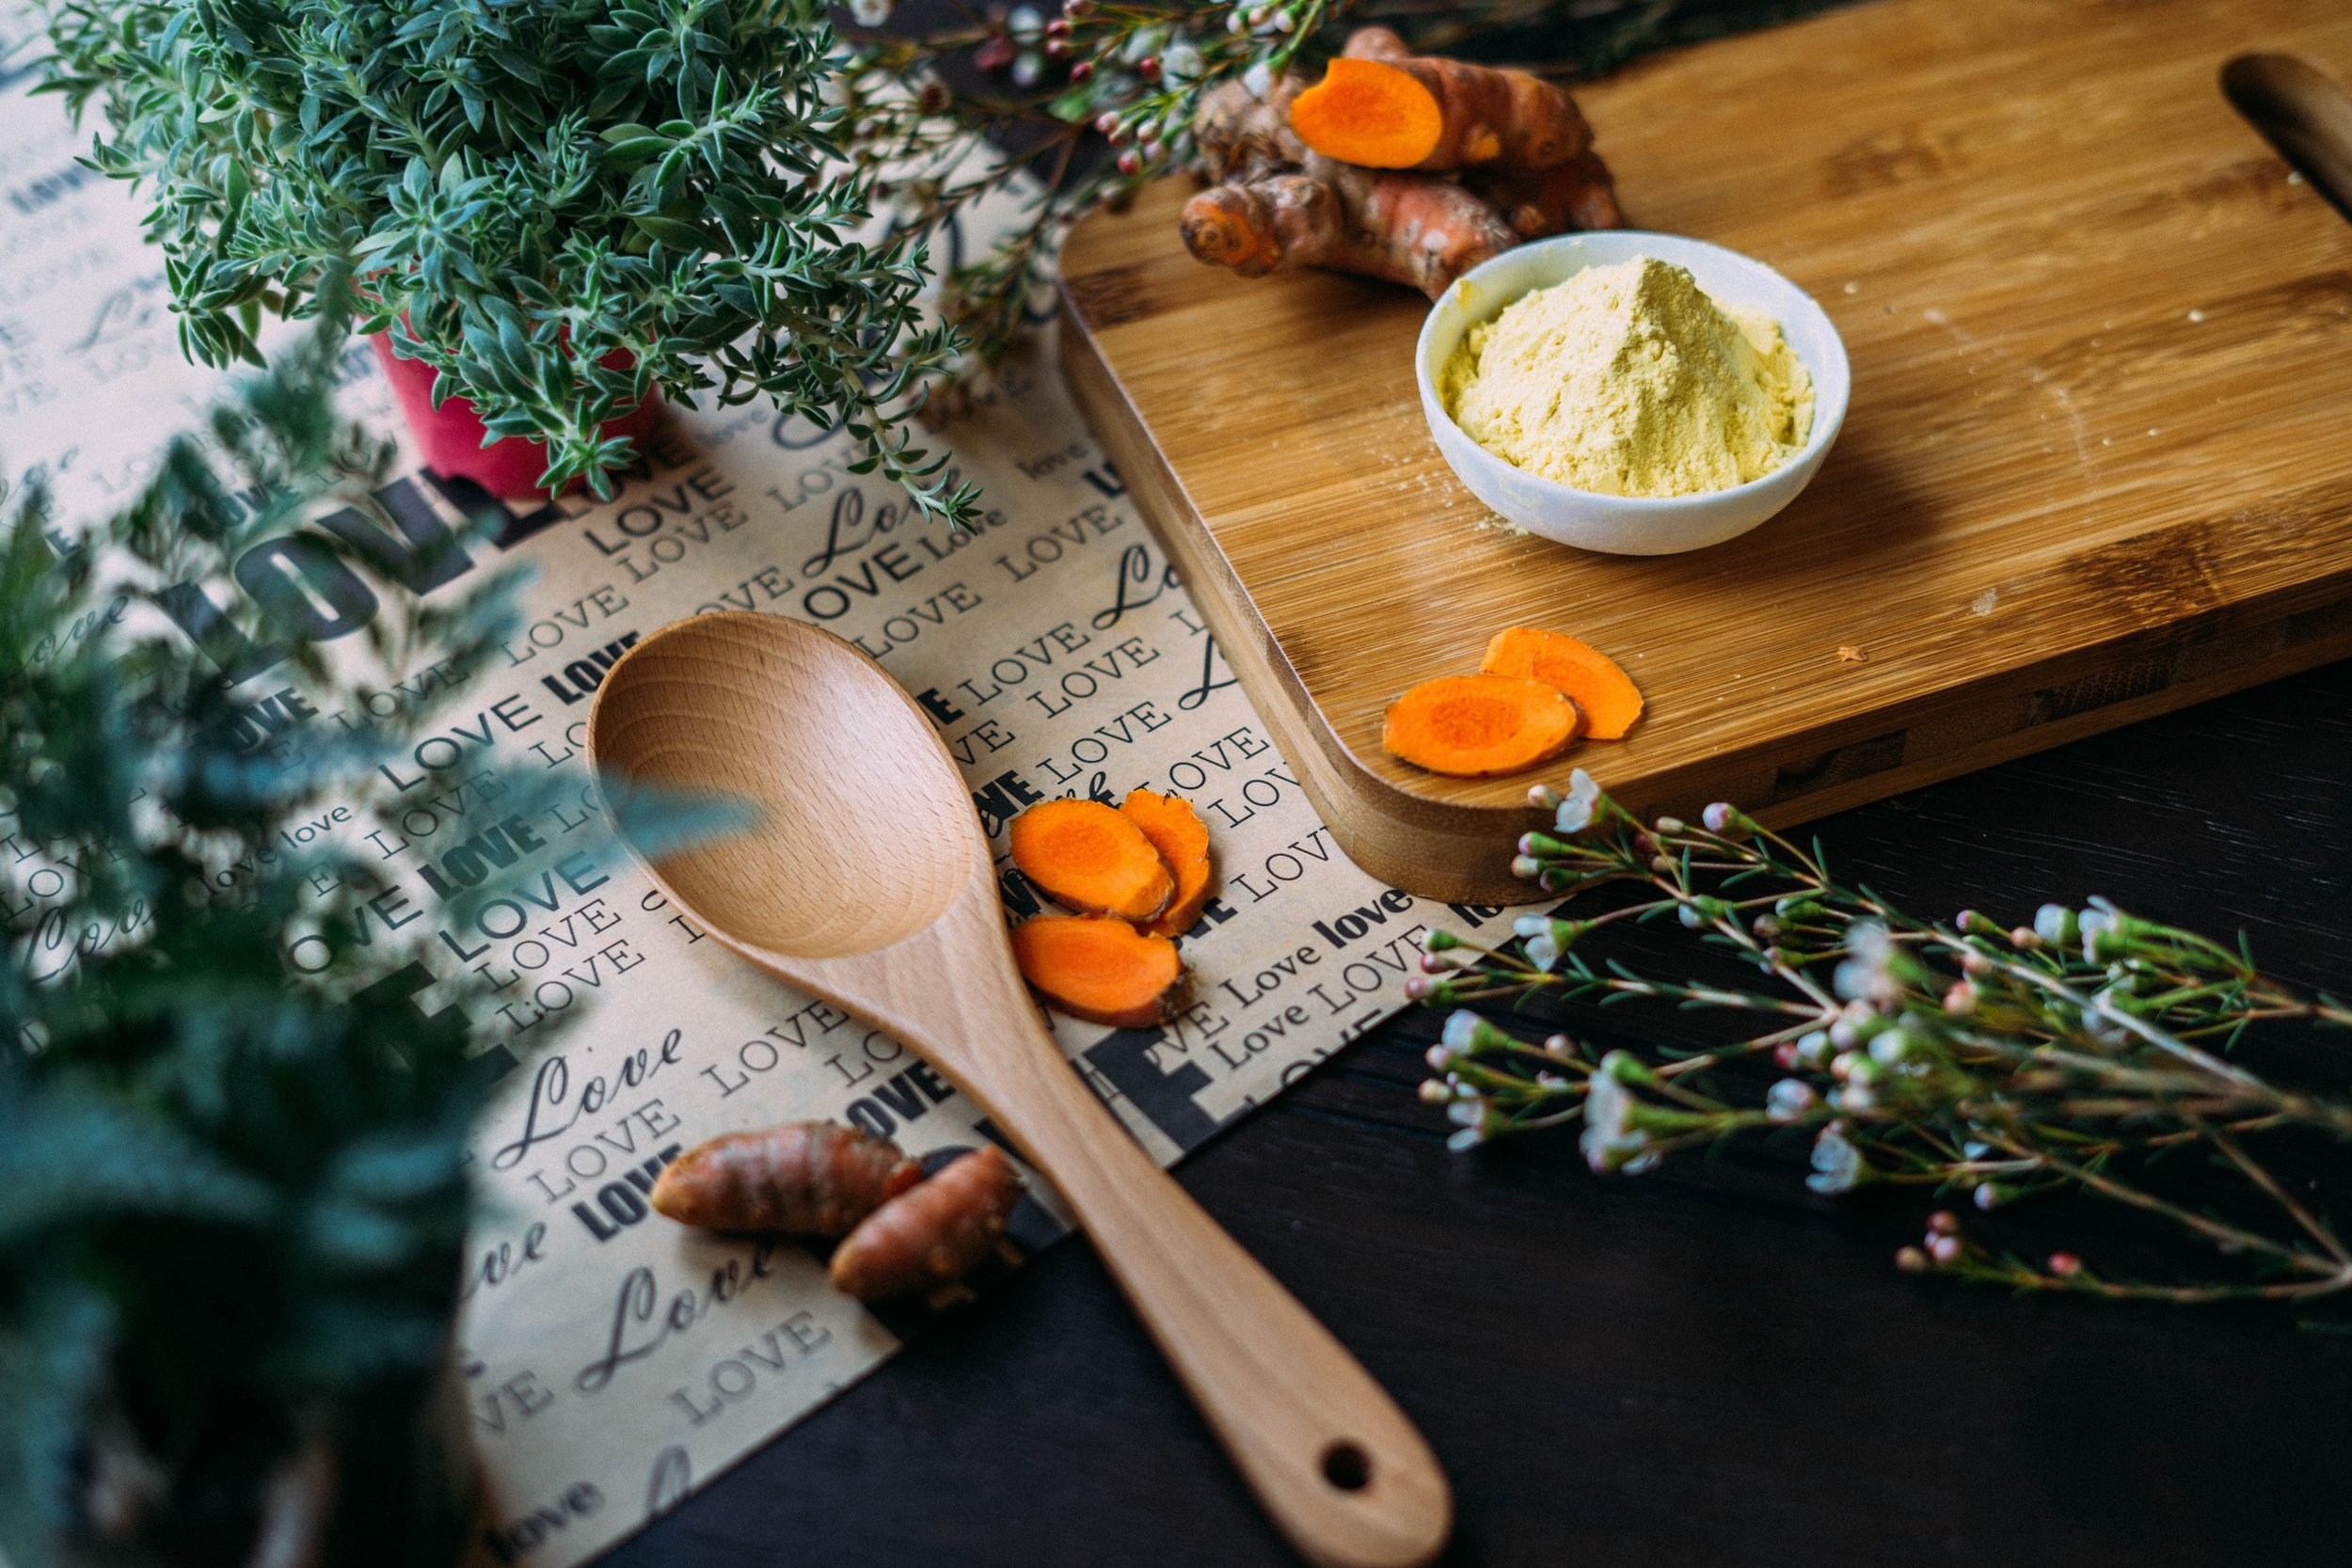 The Weston A. Price Foundation - Your source for accurate information on nutrition and health, always aiming to provide the scientific validation of traditional foodways…